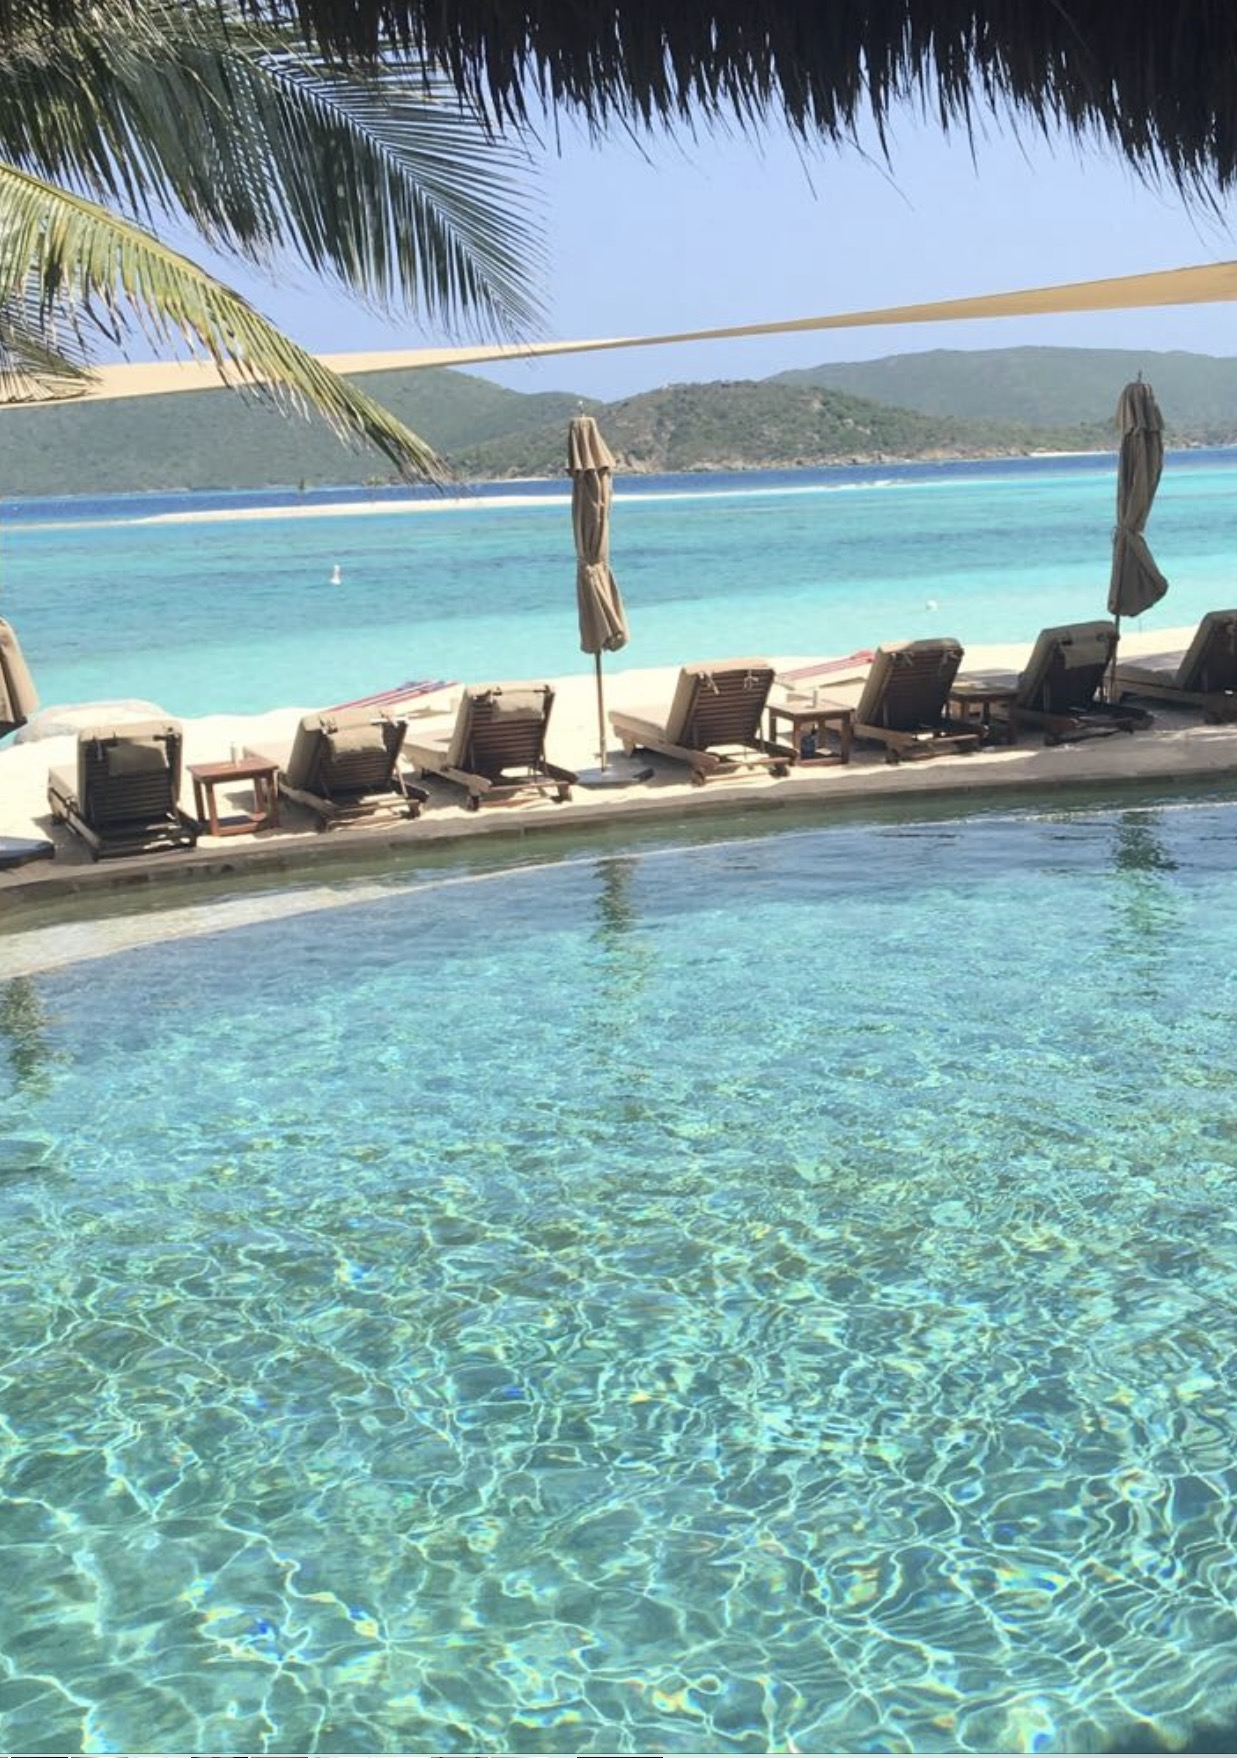 Necker island by ysclife.com - Year 2016